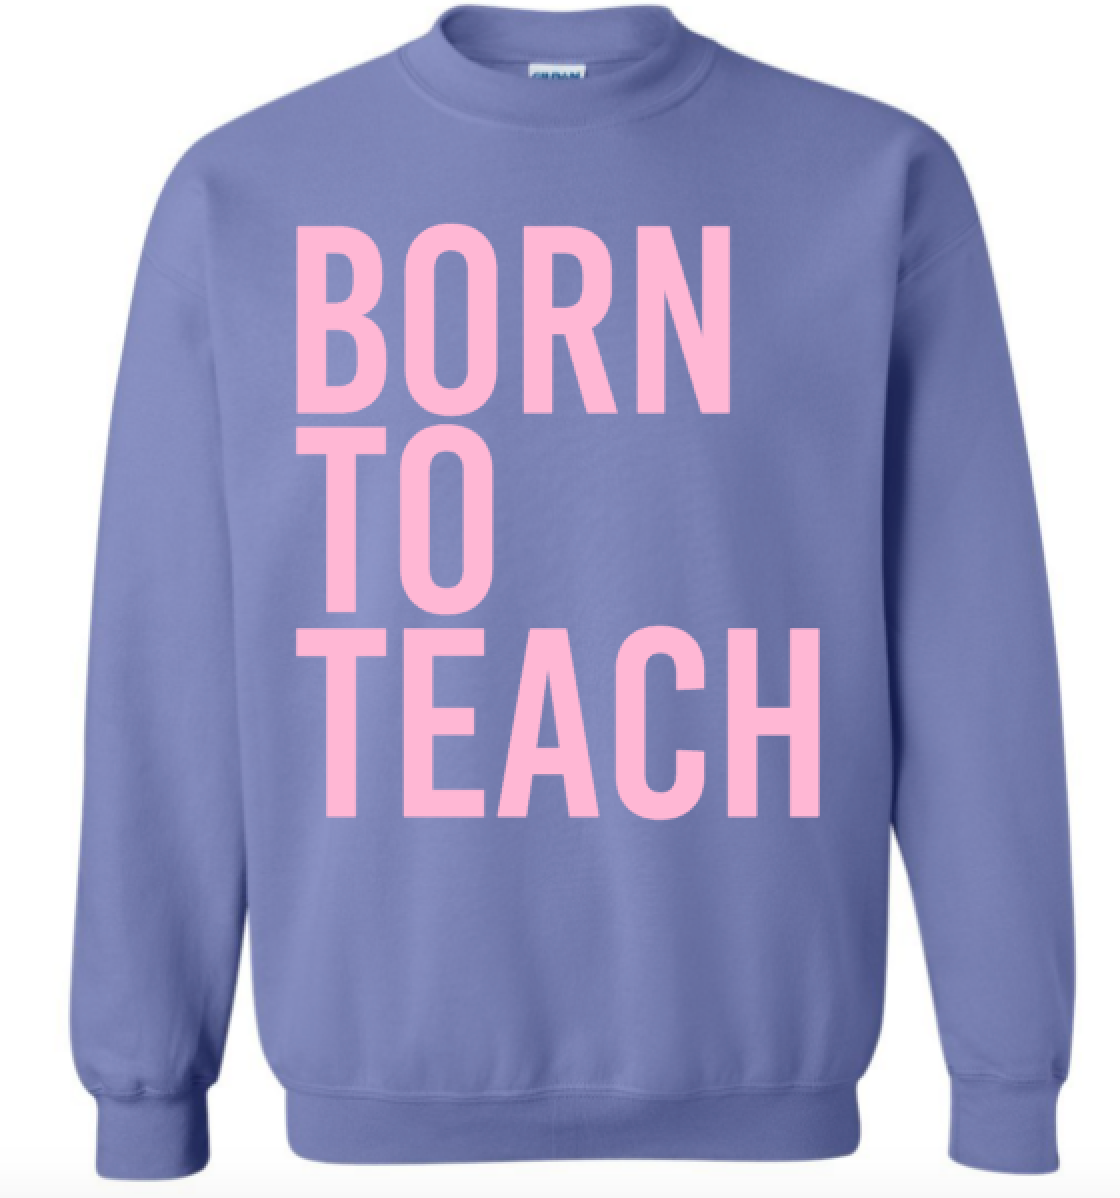 Born to Teach (violet w/pink sweatshirt)